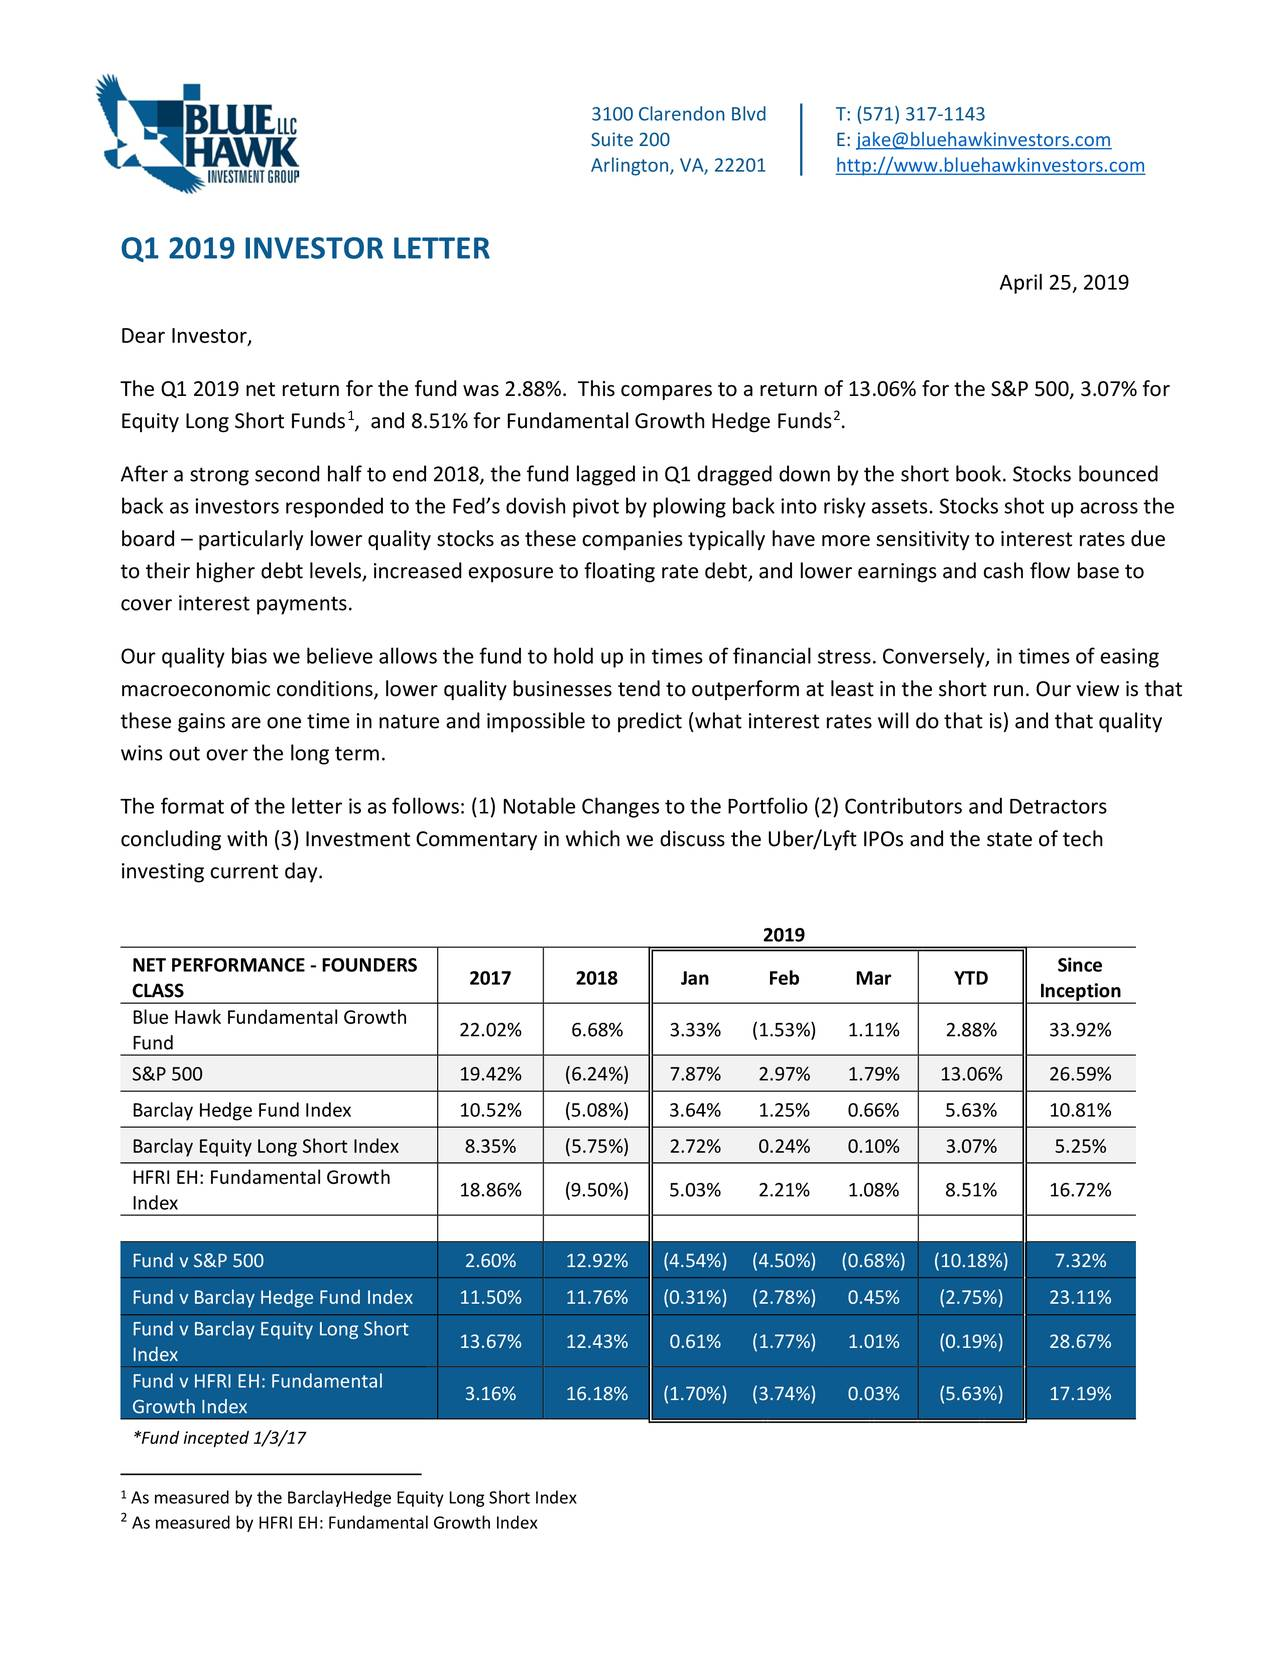 Suite 200 E: jake@bluehawkinvestors.com Arlington, VA, 22201 http://www.bluehawkinvestors.com Q1 2019 INVESTOR LETTER April 25, 2019 Dear Investor, The Q1 2019 net return for the fund was 2.88%. This compares to a return of 13.06%for the S&P 500, 3.07% for Equity Long Short Funds , and 8.51% for Fundamental Growth Hedge Funds . 2 After a strong second half to end 2018, the fund lagged in Q1 dragged down by the short book. Stocksbounced back as investors responded to the Fed's dovish pivot by plowing back into risky assets. Stocks shot up across the board – particularly lower quality stocksas these companies typically have more sensitivity to interest rates due to their higher debt levels, increased exposure to floating rate debt, and lower earnings and cash flow baseto cover interest payments. Our quality bias we believe allows the fund to hold up in times of financial stress. Conversely, in times of easing macroeconomic conditions, lower quality businesses tend tooutperform at least in the short run. Our view is that these gains are one time in nature and impossible to predict (what interest rates will do that is) and that quality wins out over the long term. The format of the letter is as follows: (1) Notable Changes to the Portfolio (2) Contributors and Detractors concluding with (3) Investment Commentary in which we discuss the Uber/Lyft IPOs and the state of tech investing current day. 2019 NET PERFORMANCE- FOUNDERS Since CLASS 2017 2018 Jan Feb Mar YTD Inception Blue Hawk Fundamental Growth 22.02% 6.68% 3.33% (1.53%) 1.11% 2.88% 33.92% Fund S&P 500 19.42% (6.24%) 7.87% 2.97% 1.79% 13.06% 26.59% Barclay Hedge Fund Index 10.52% (5.08%) 3.64% 1.25% 0.66% 5.63% 10.81% Barclay Equity Long Short Index 8.35% (5.75%) 2.72% 0.24% 0.10% 3.07% 5.25% HFRI EH: Fundamental Growth 18.86% (9.50%) 5.03% 2.21% 1.08% 8.51% 16.72% Index Fund v S&P 500 2.60% 12.92% (4.54%) (4.50%) (0.68%) (10.18%) 7.32% Fund v Barclay Hedge Fund Index 11.50% 11.76% (0.31%) (2.78%) 0.45% (2.75%) 23.11% Fund v Barclay Equity Long Short 13.67% 12.43% 0.61% (1.77%) 1.01% (0.19%) 28.67% Index Fund v HFRI EH: Fundamental 3.16% 16.18% (1.70%) (3.74%) 0.03% (5.63%) 17.19% Growth Index *Fund incepted 1/3/17 1As measured by the BarclayHedge Equity Long Short Index 2As measured by HFRI EH: Fundamental Growth Index